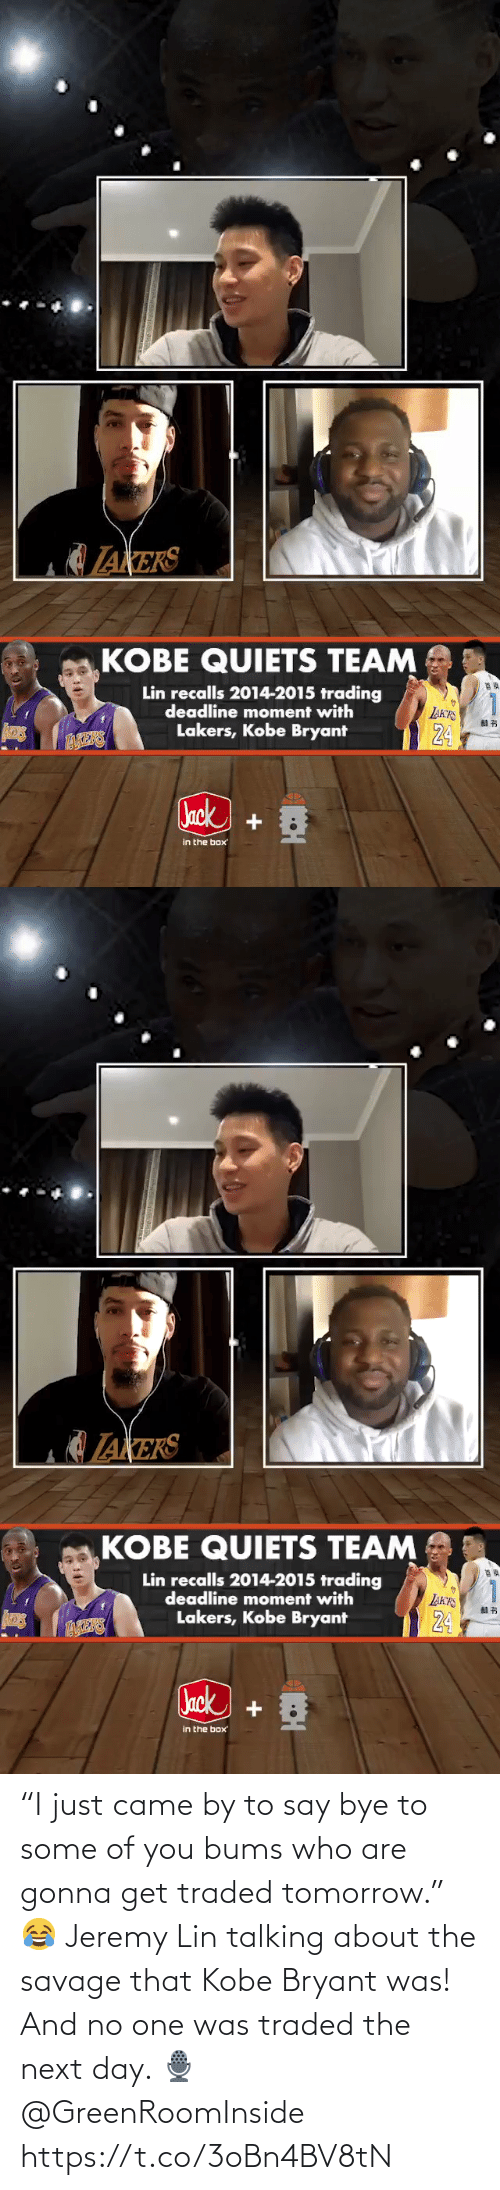 """talking: """"I just came by to say bye to some of you bums who are gonna get traded tomorrow.""""   😂 Jeremy Lin talking about the savage that Kobe Bryant was! And no one was traded the next day.    🎙 @GreenRoomInside    https://t.co/3oBn4BV8tN"""